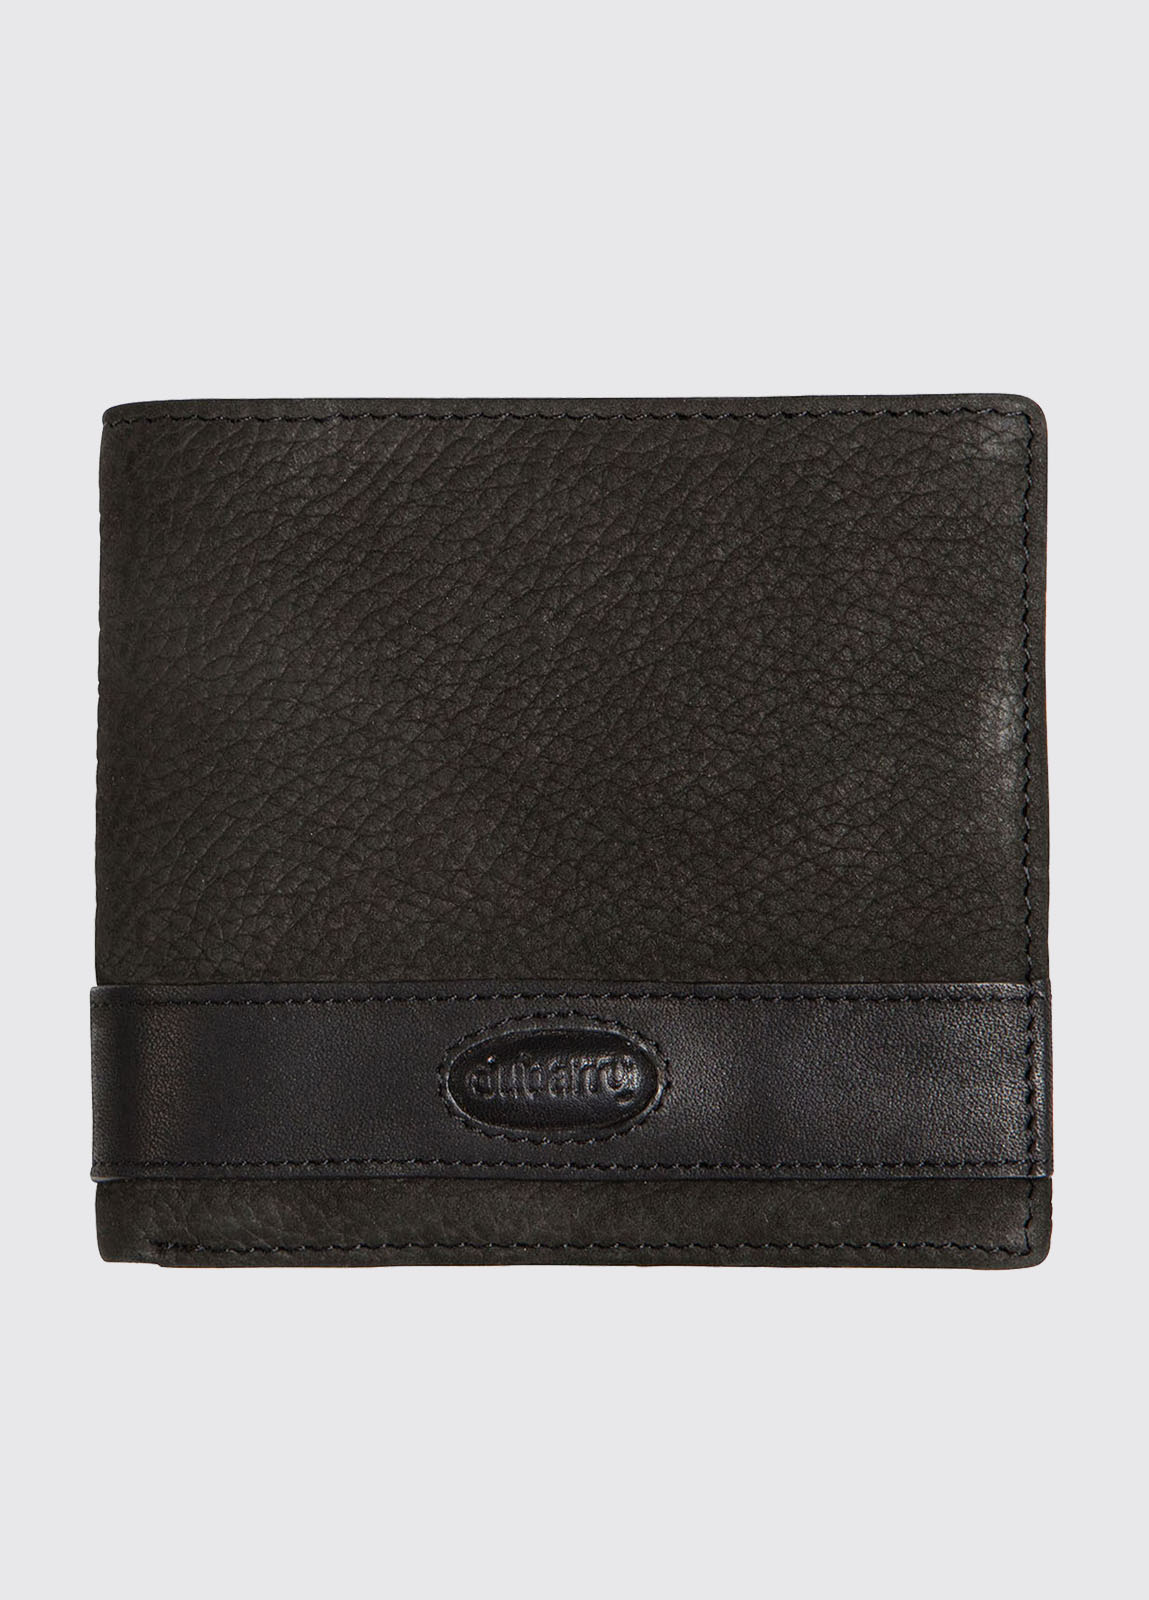 Drummin Leather Wallet - Black